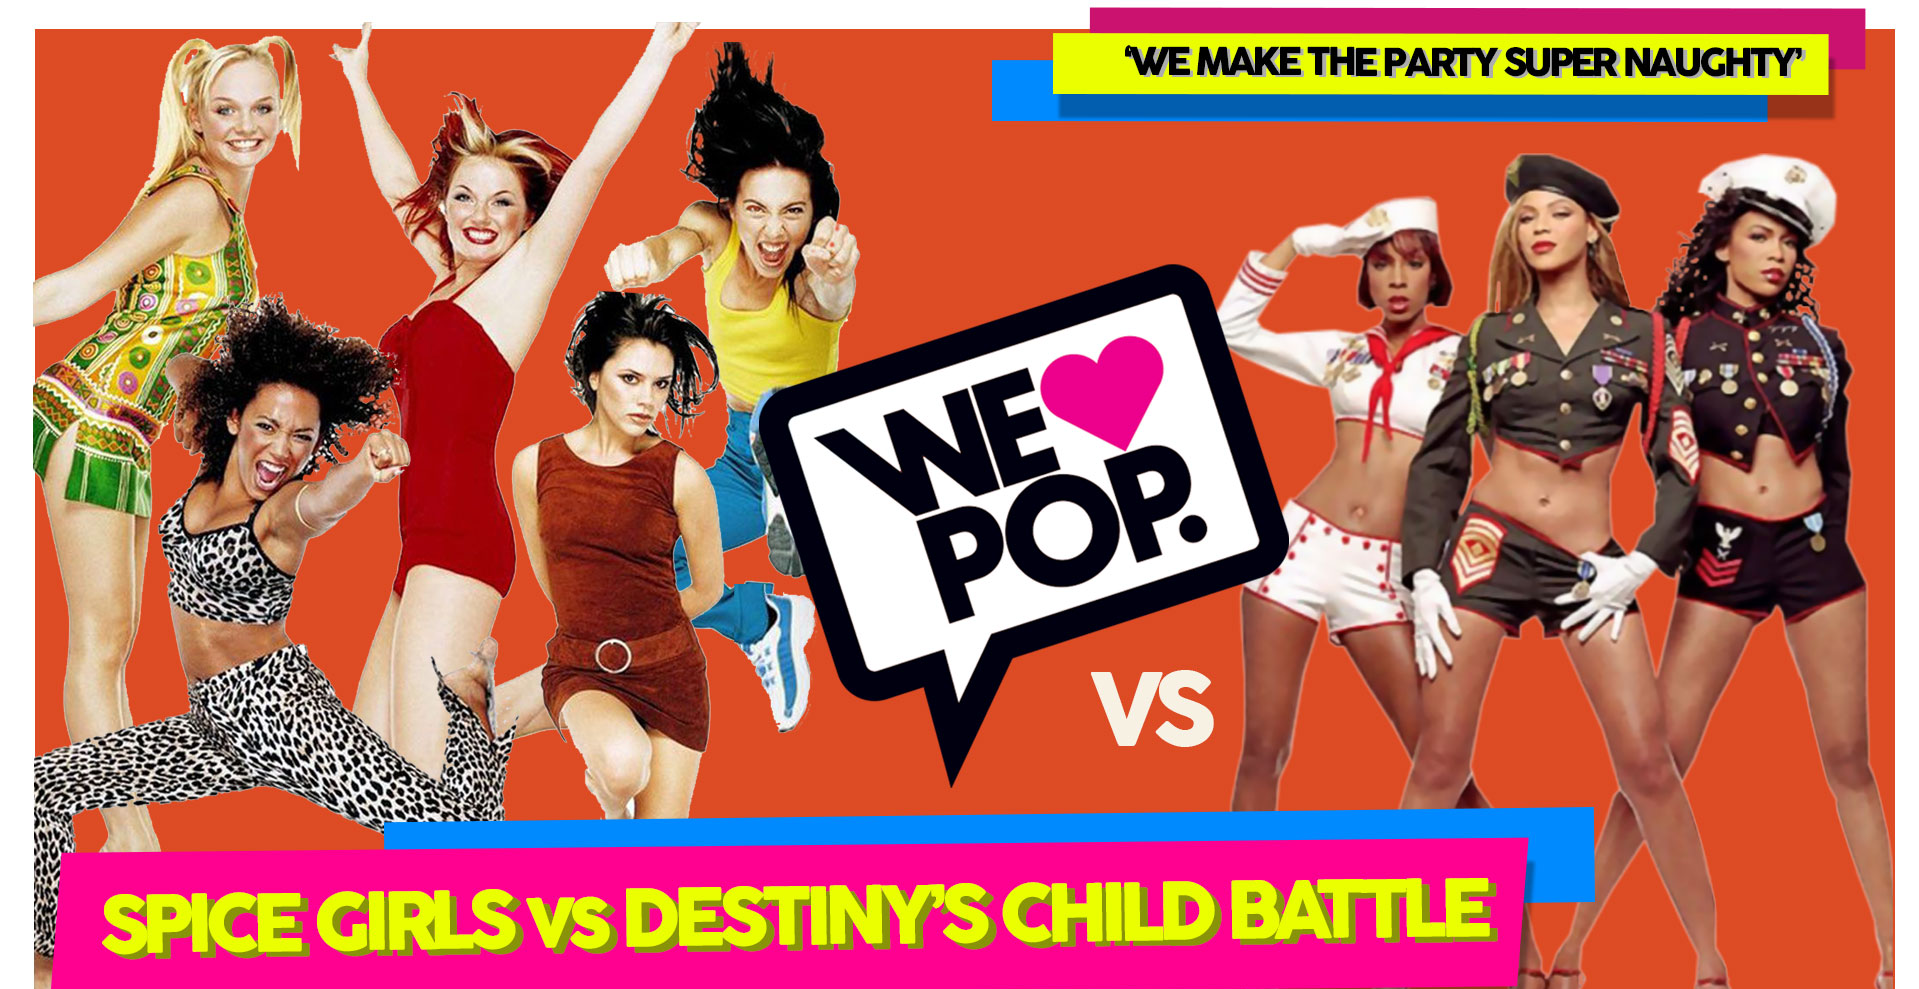 WeLovePop Club's SPICE GIRLS vs DESTINY'S CHILD Battle